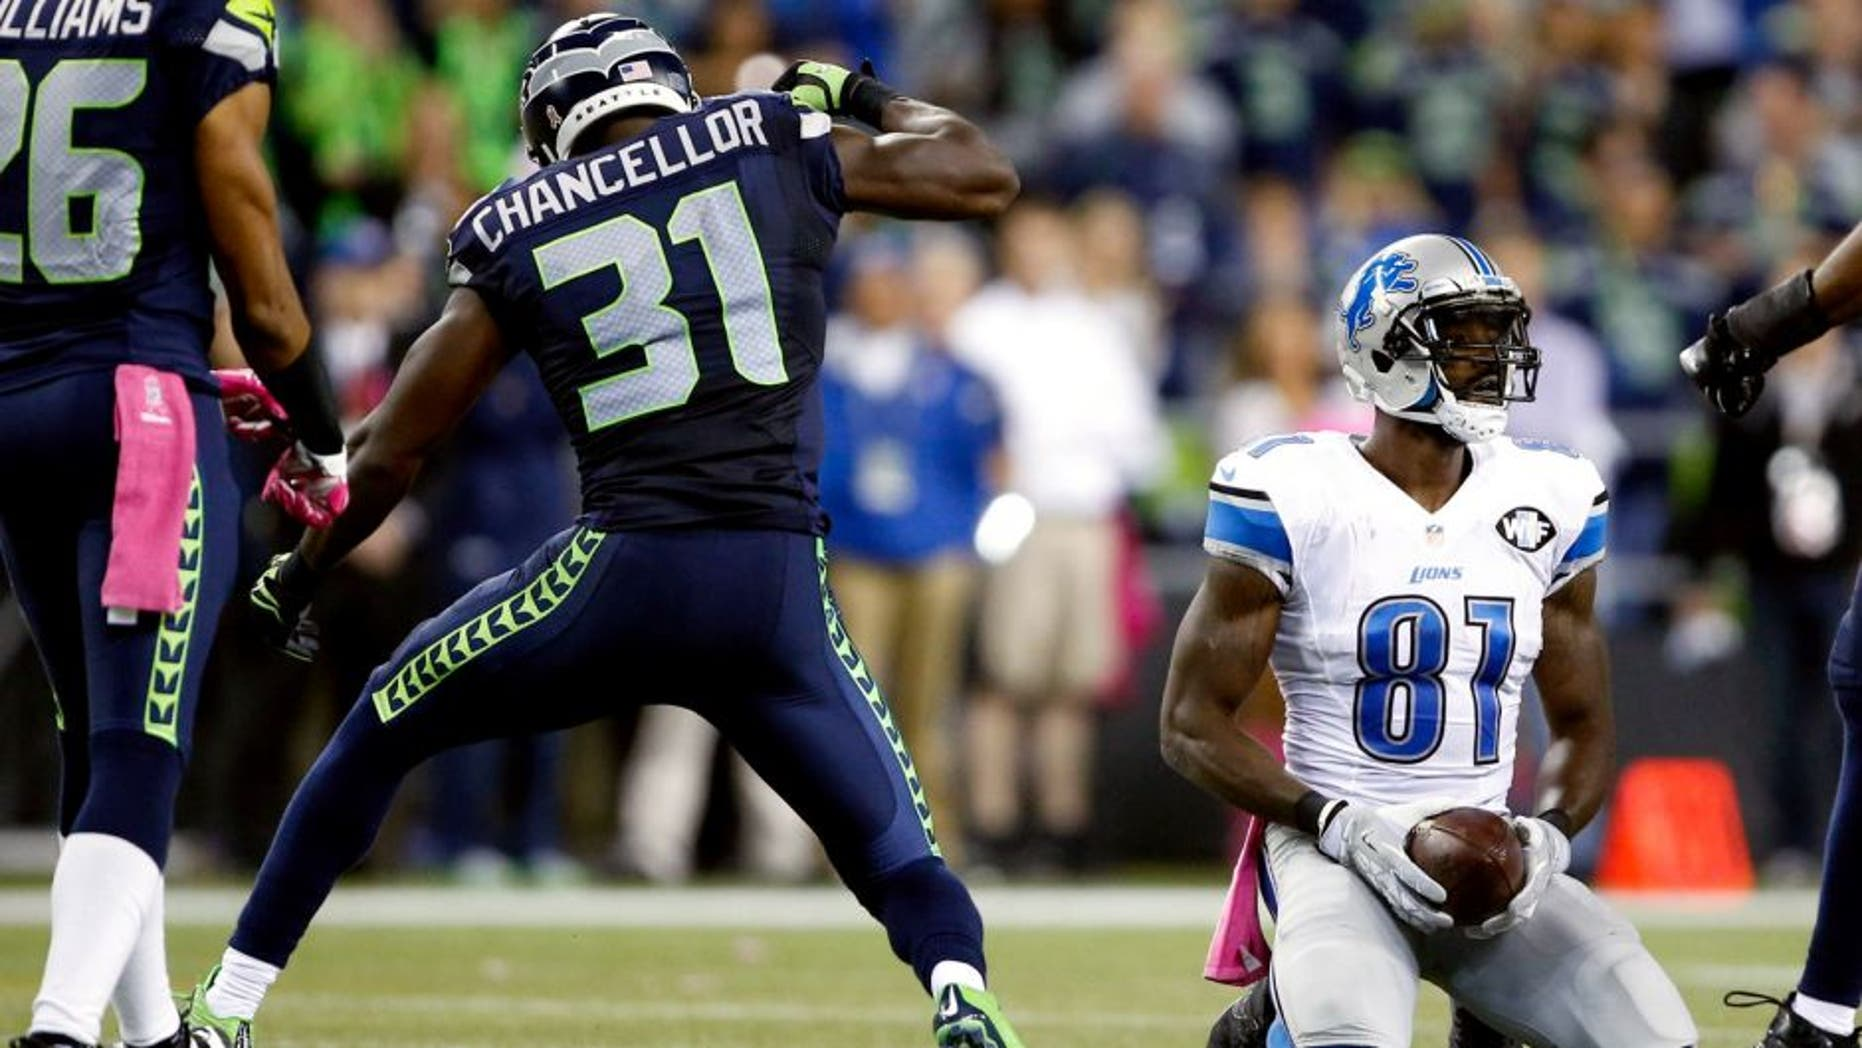 Oct 5, 2015; Seattle, WA, USA; Seattle Seahawks strong safety Kam Chancellor (31) reacts after his tackle against Detroit Lions wide receiver Calvin Johnson (81) during the fourth quarter at CenturyLink Field. Mandatory Credit: Joe Nicholson-USA TODAY Sports